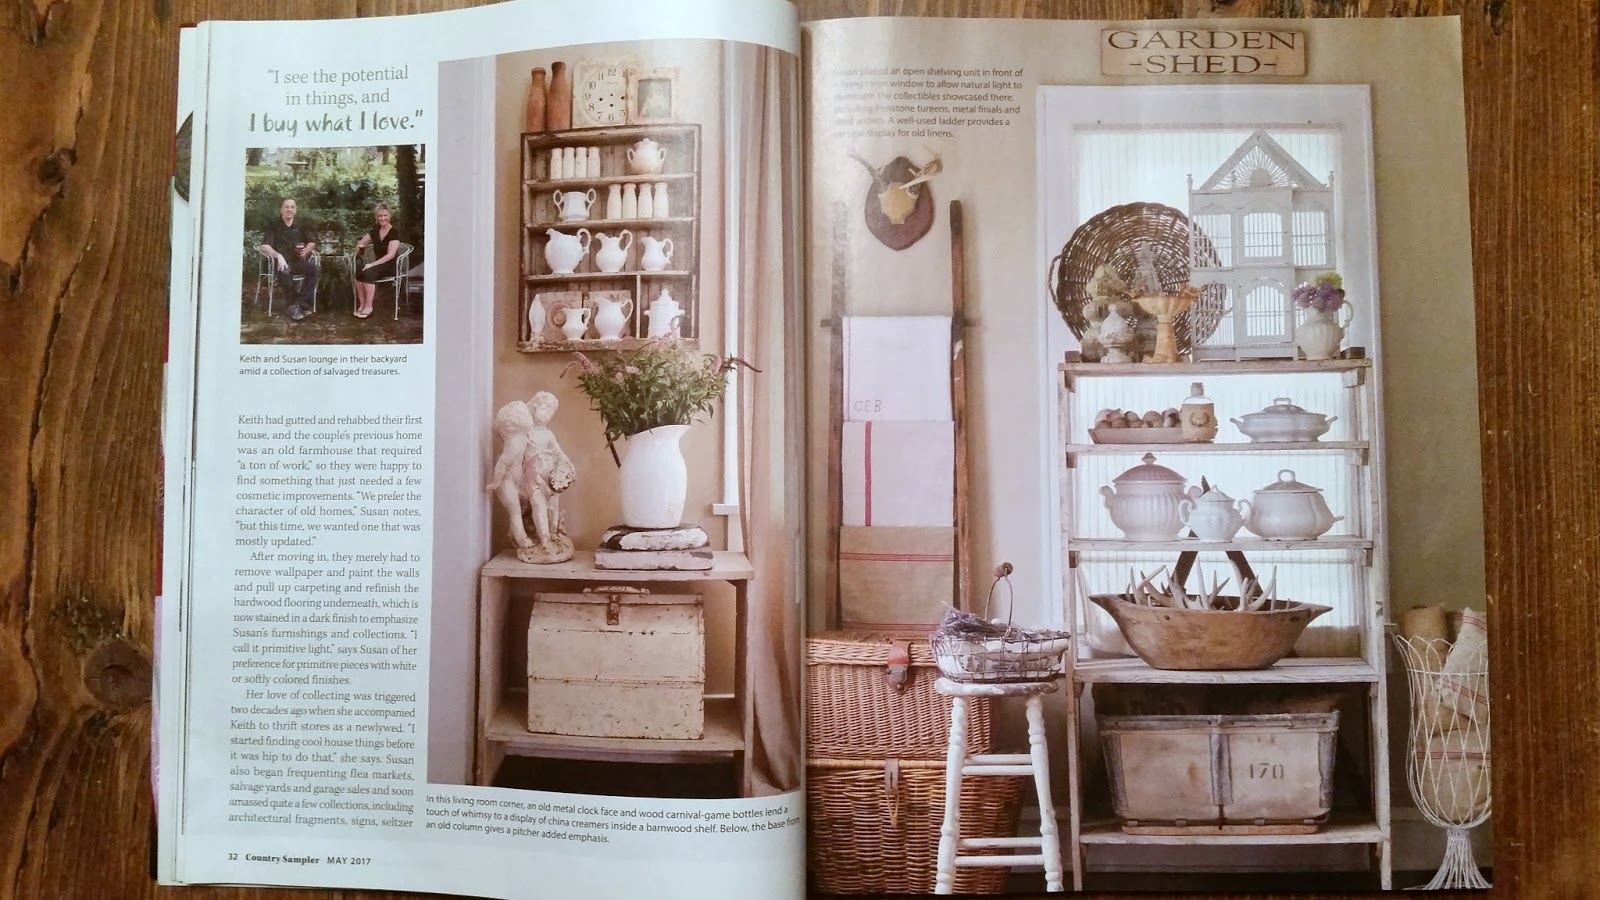 must love junk: may 2017 country sampler magazine feature